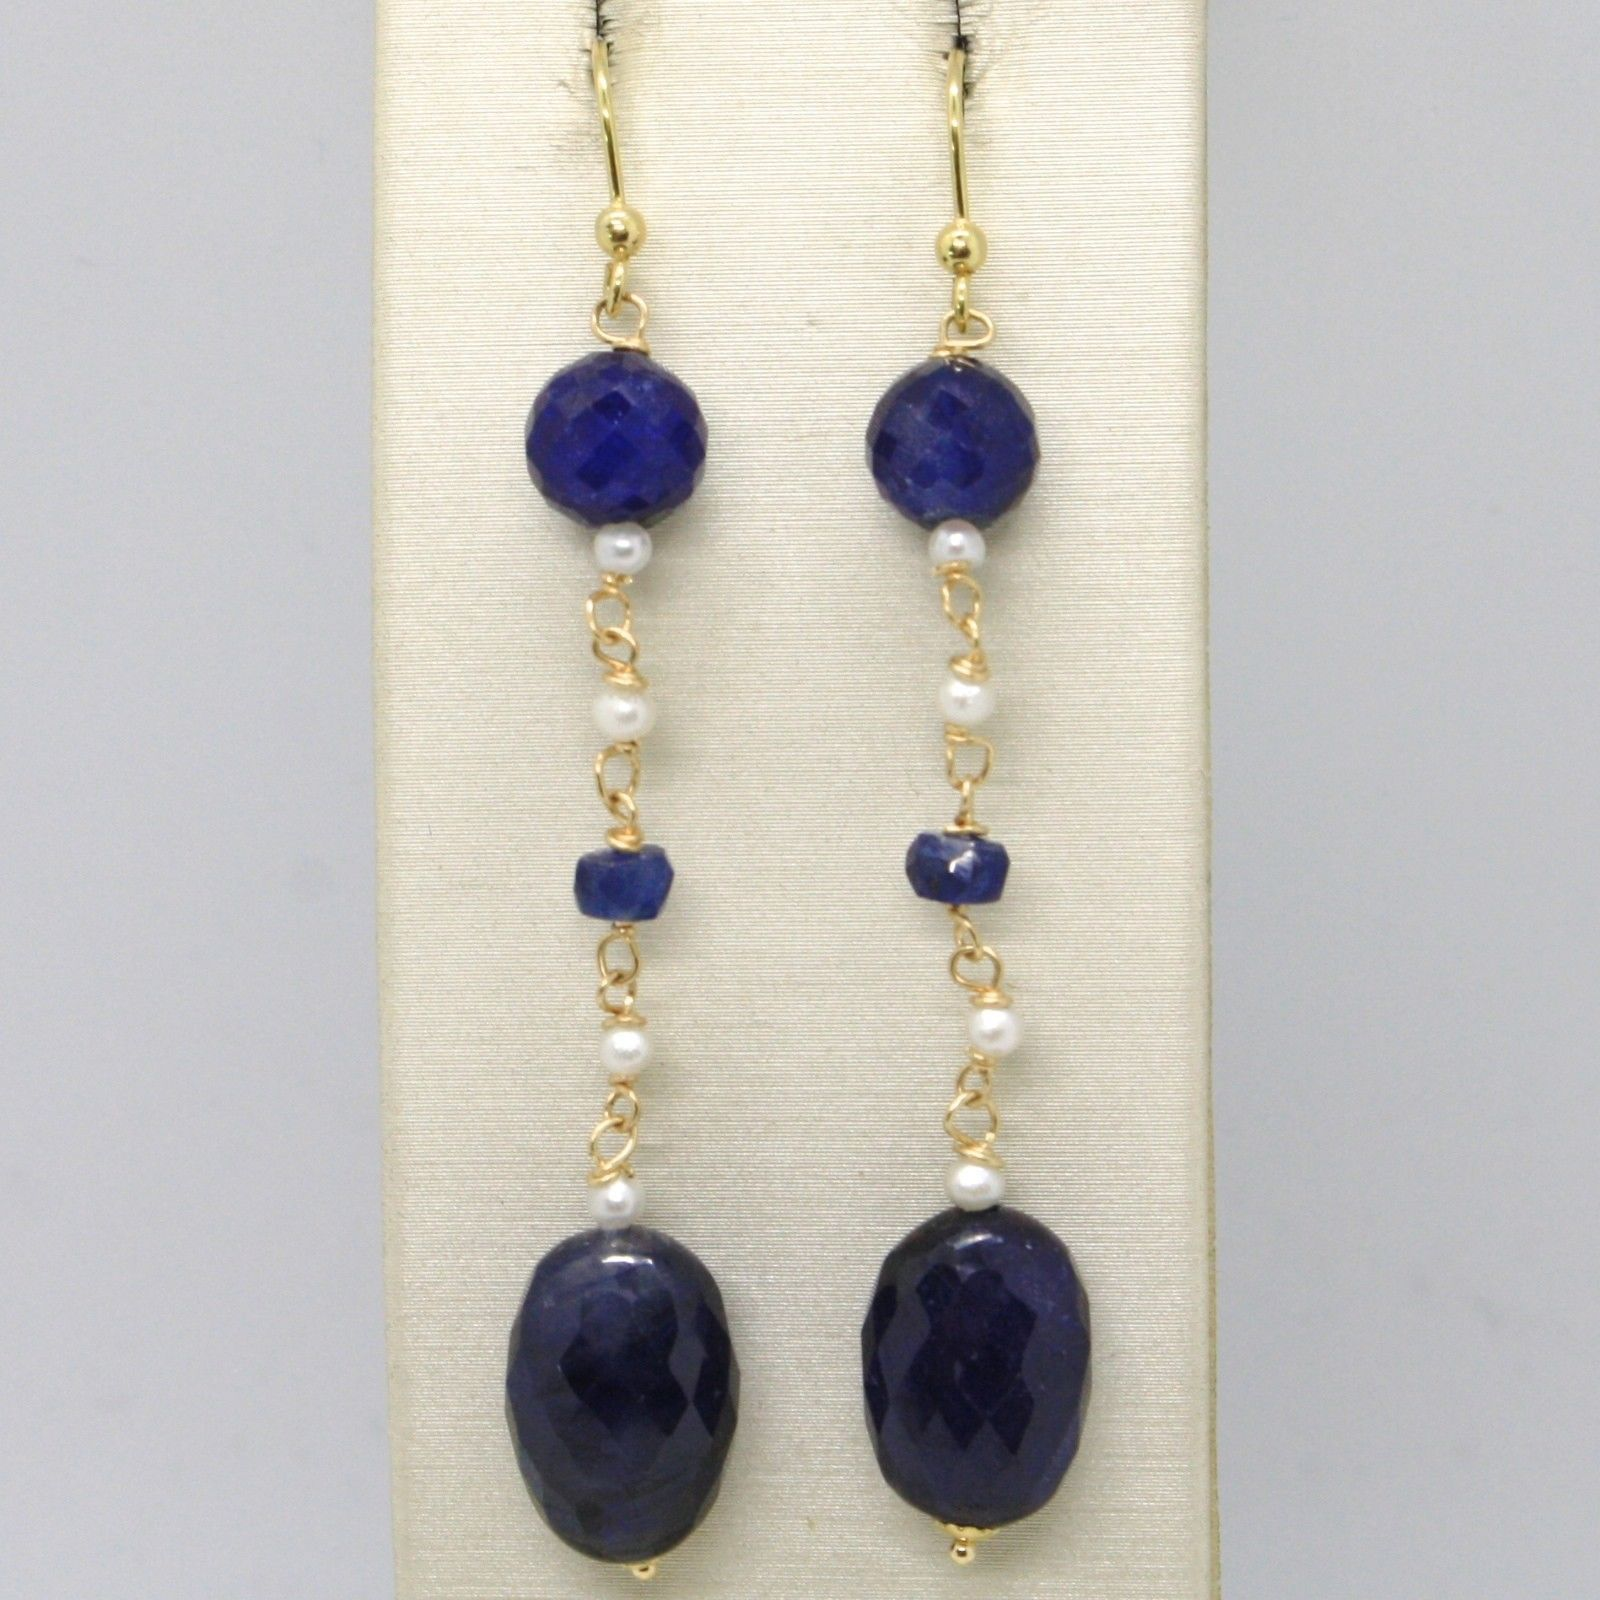 18K YELLOW GOLD PENDANT EARRINGS, OVAL FACETED SAPPHIRE & PEARL, MADE IN ITALY